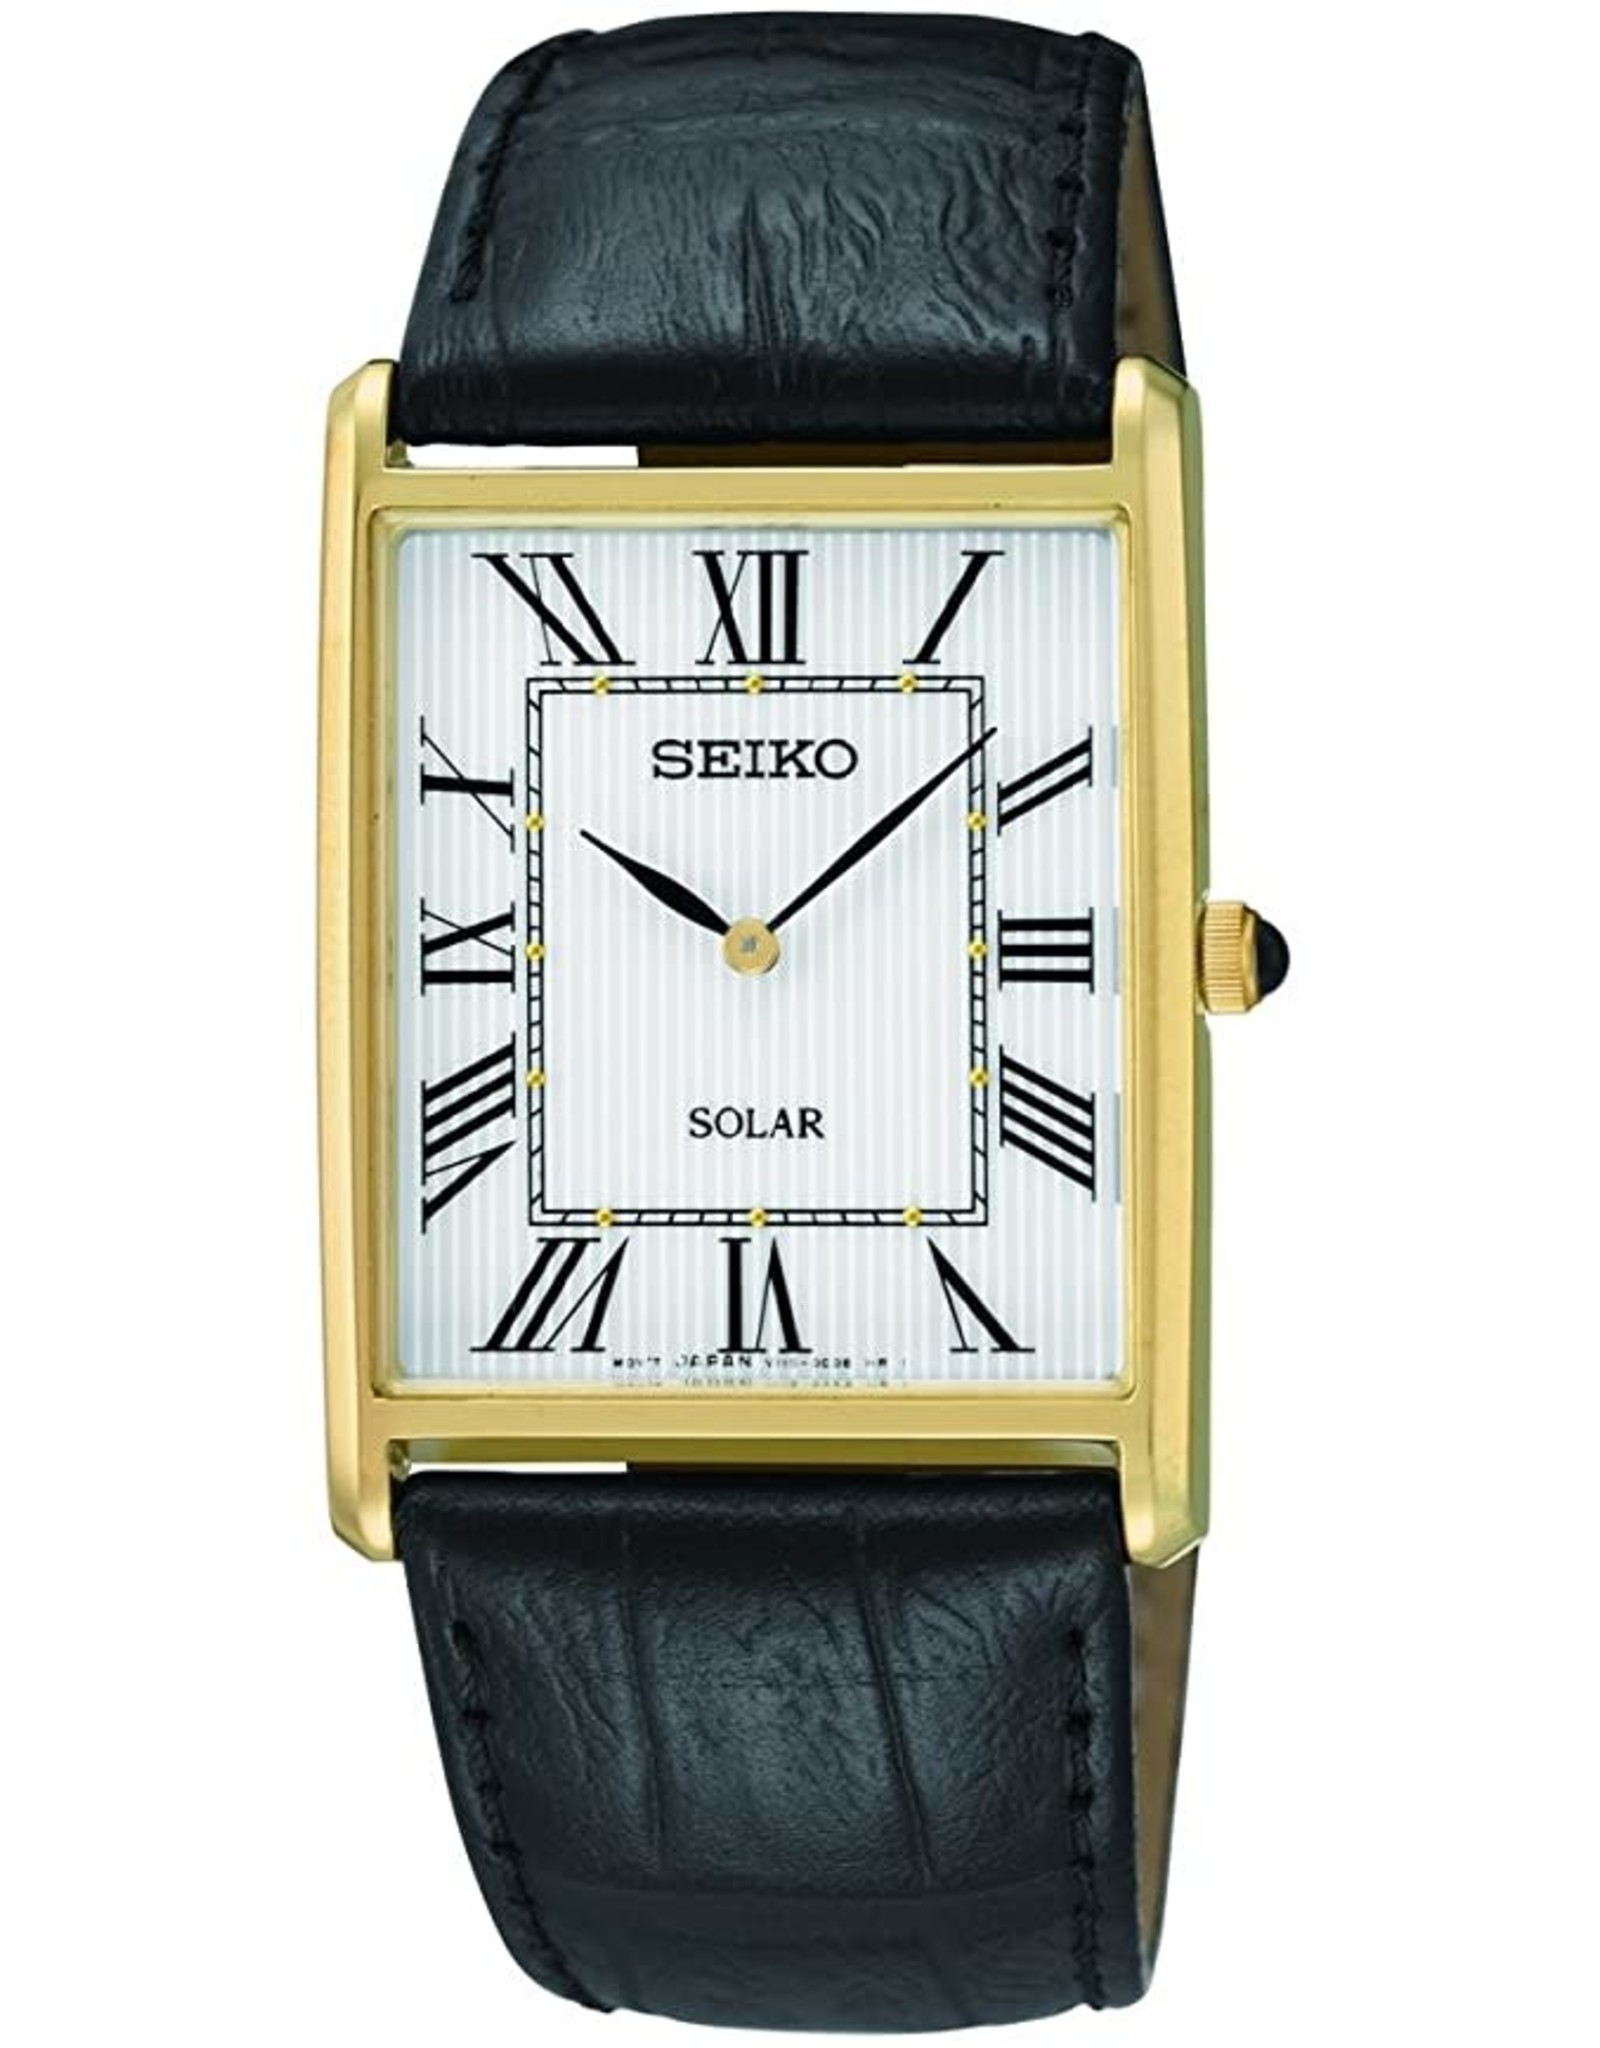 Mens Seiko Solar Rectangular Roman Numeral Watch, 28mm